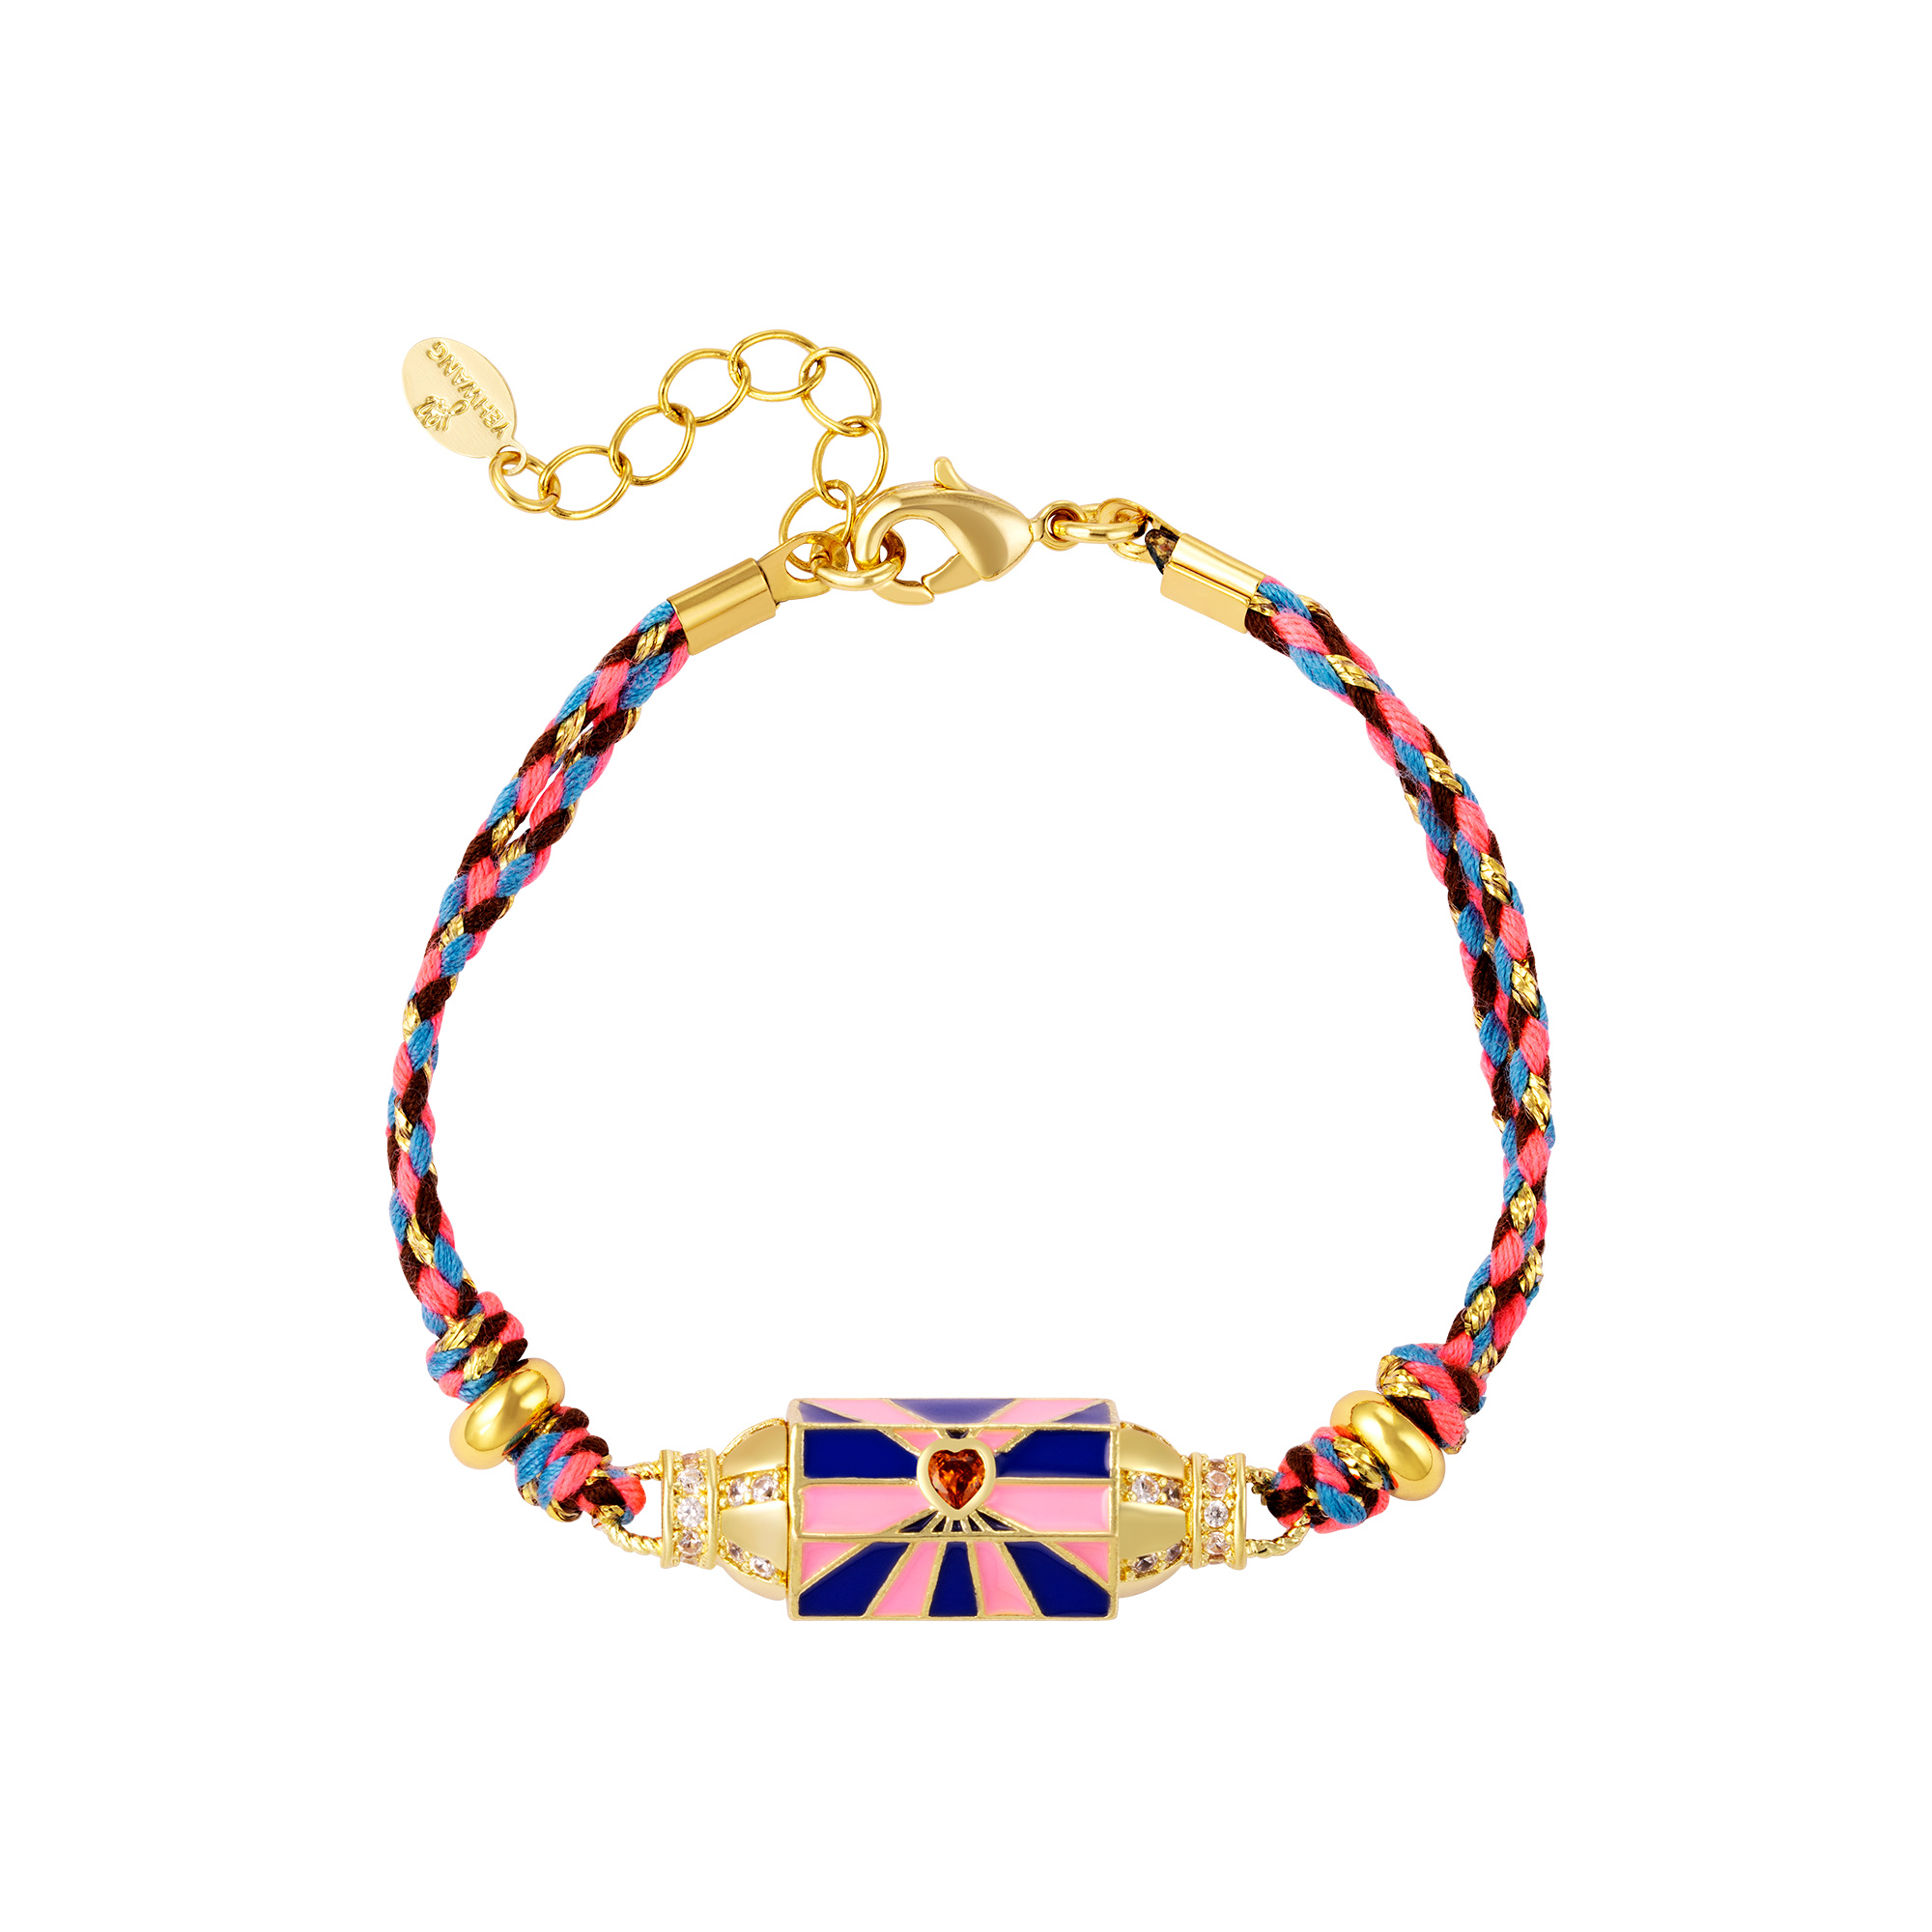 Colorful gold plated bracelet